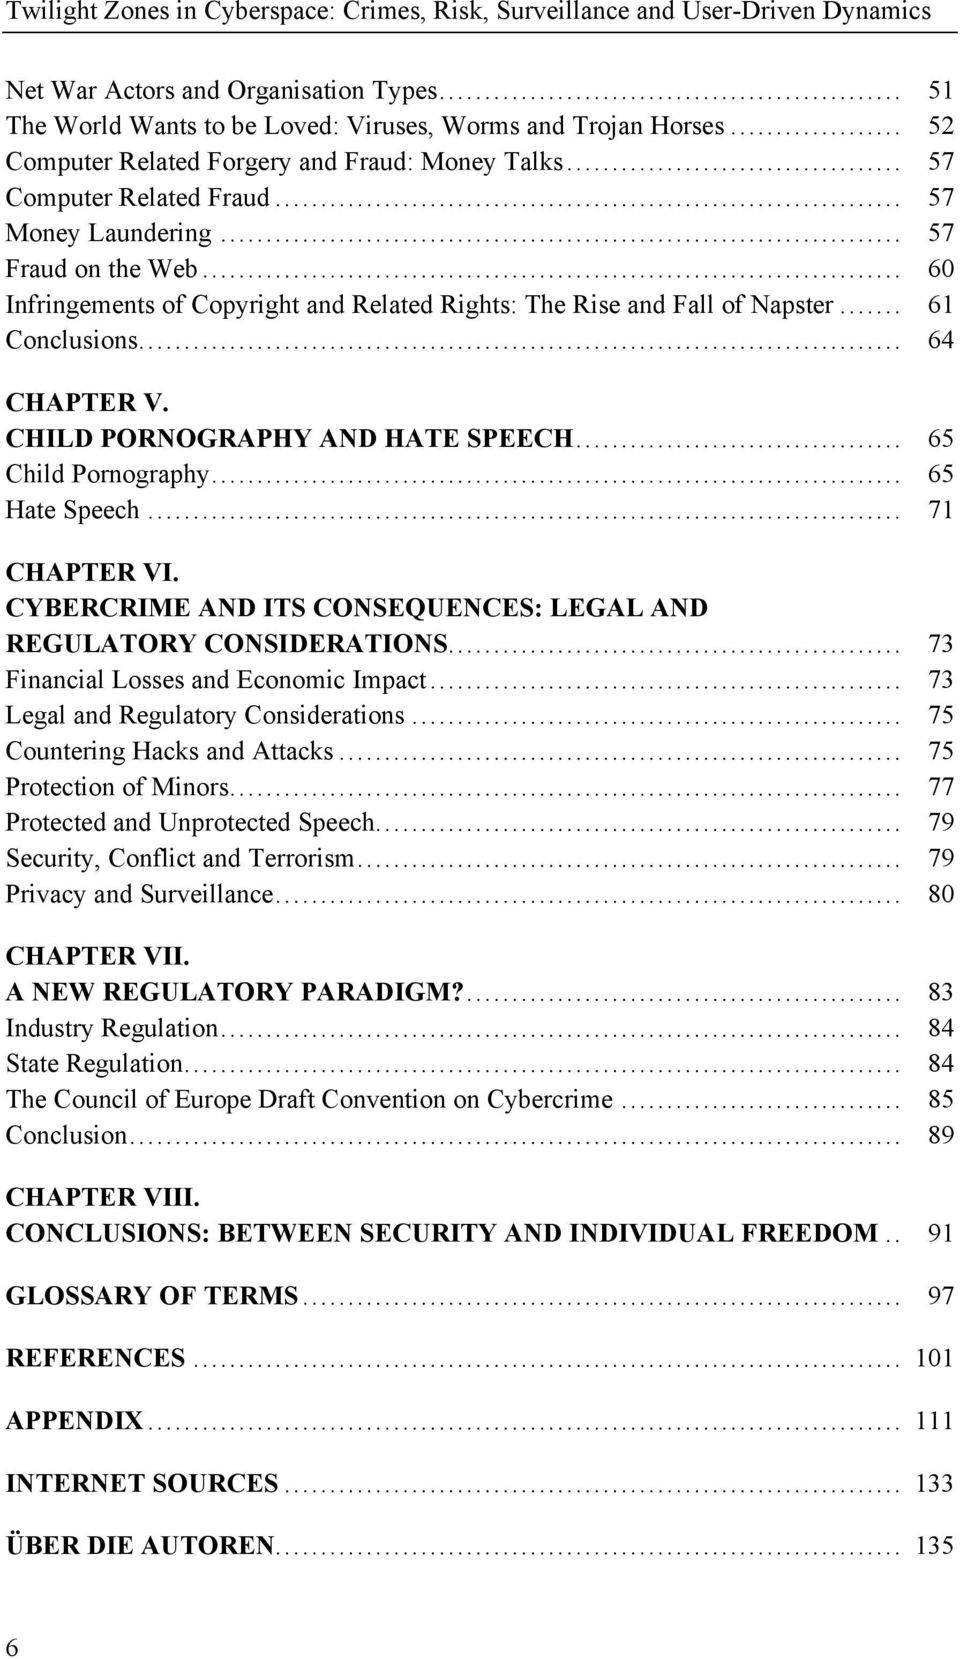 .. 60 Infringements of Copyright and Related Rights: The Rise and Fall of Napster... 61 Conclusions... 64 CHAPTER V. CHILD PORNOGRAPHY AND HATE SPEECH... 65 Child Pornography... 65 Hate Speech.